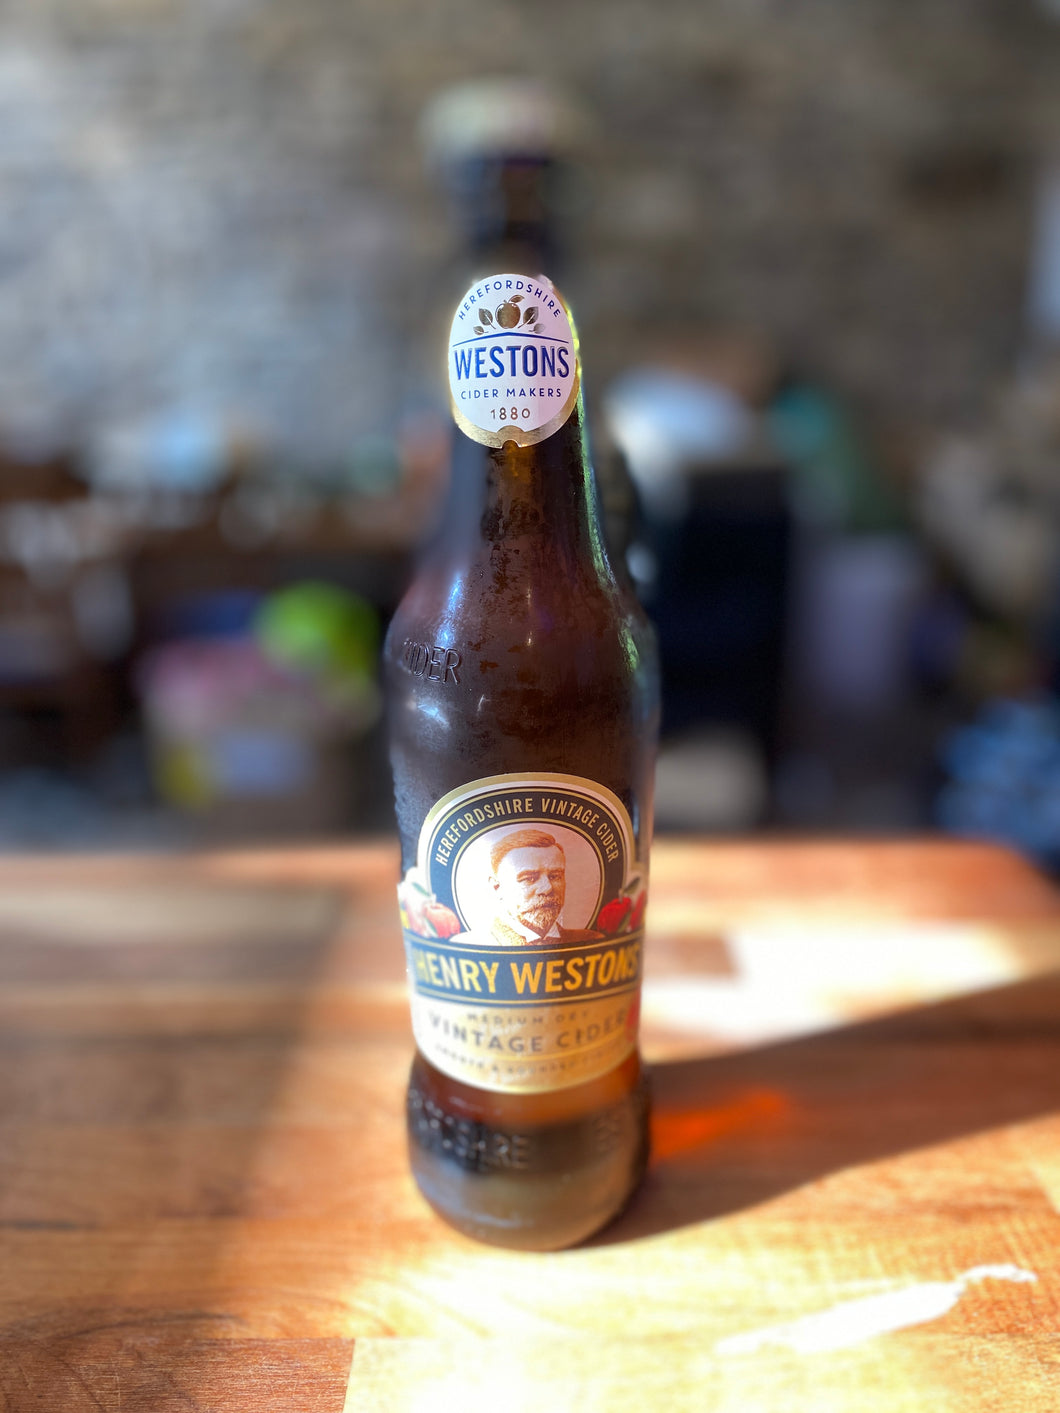 Henry Weston's - Vintage Cider, medium dry 500ml bottle